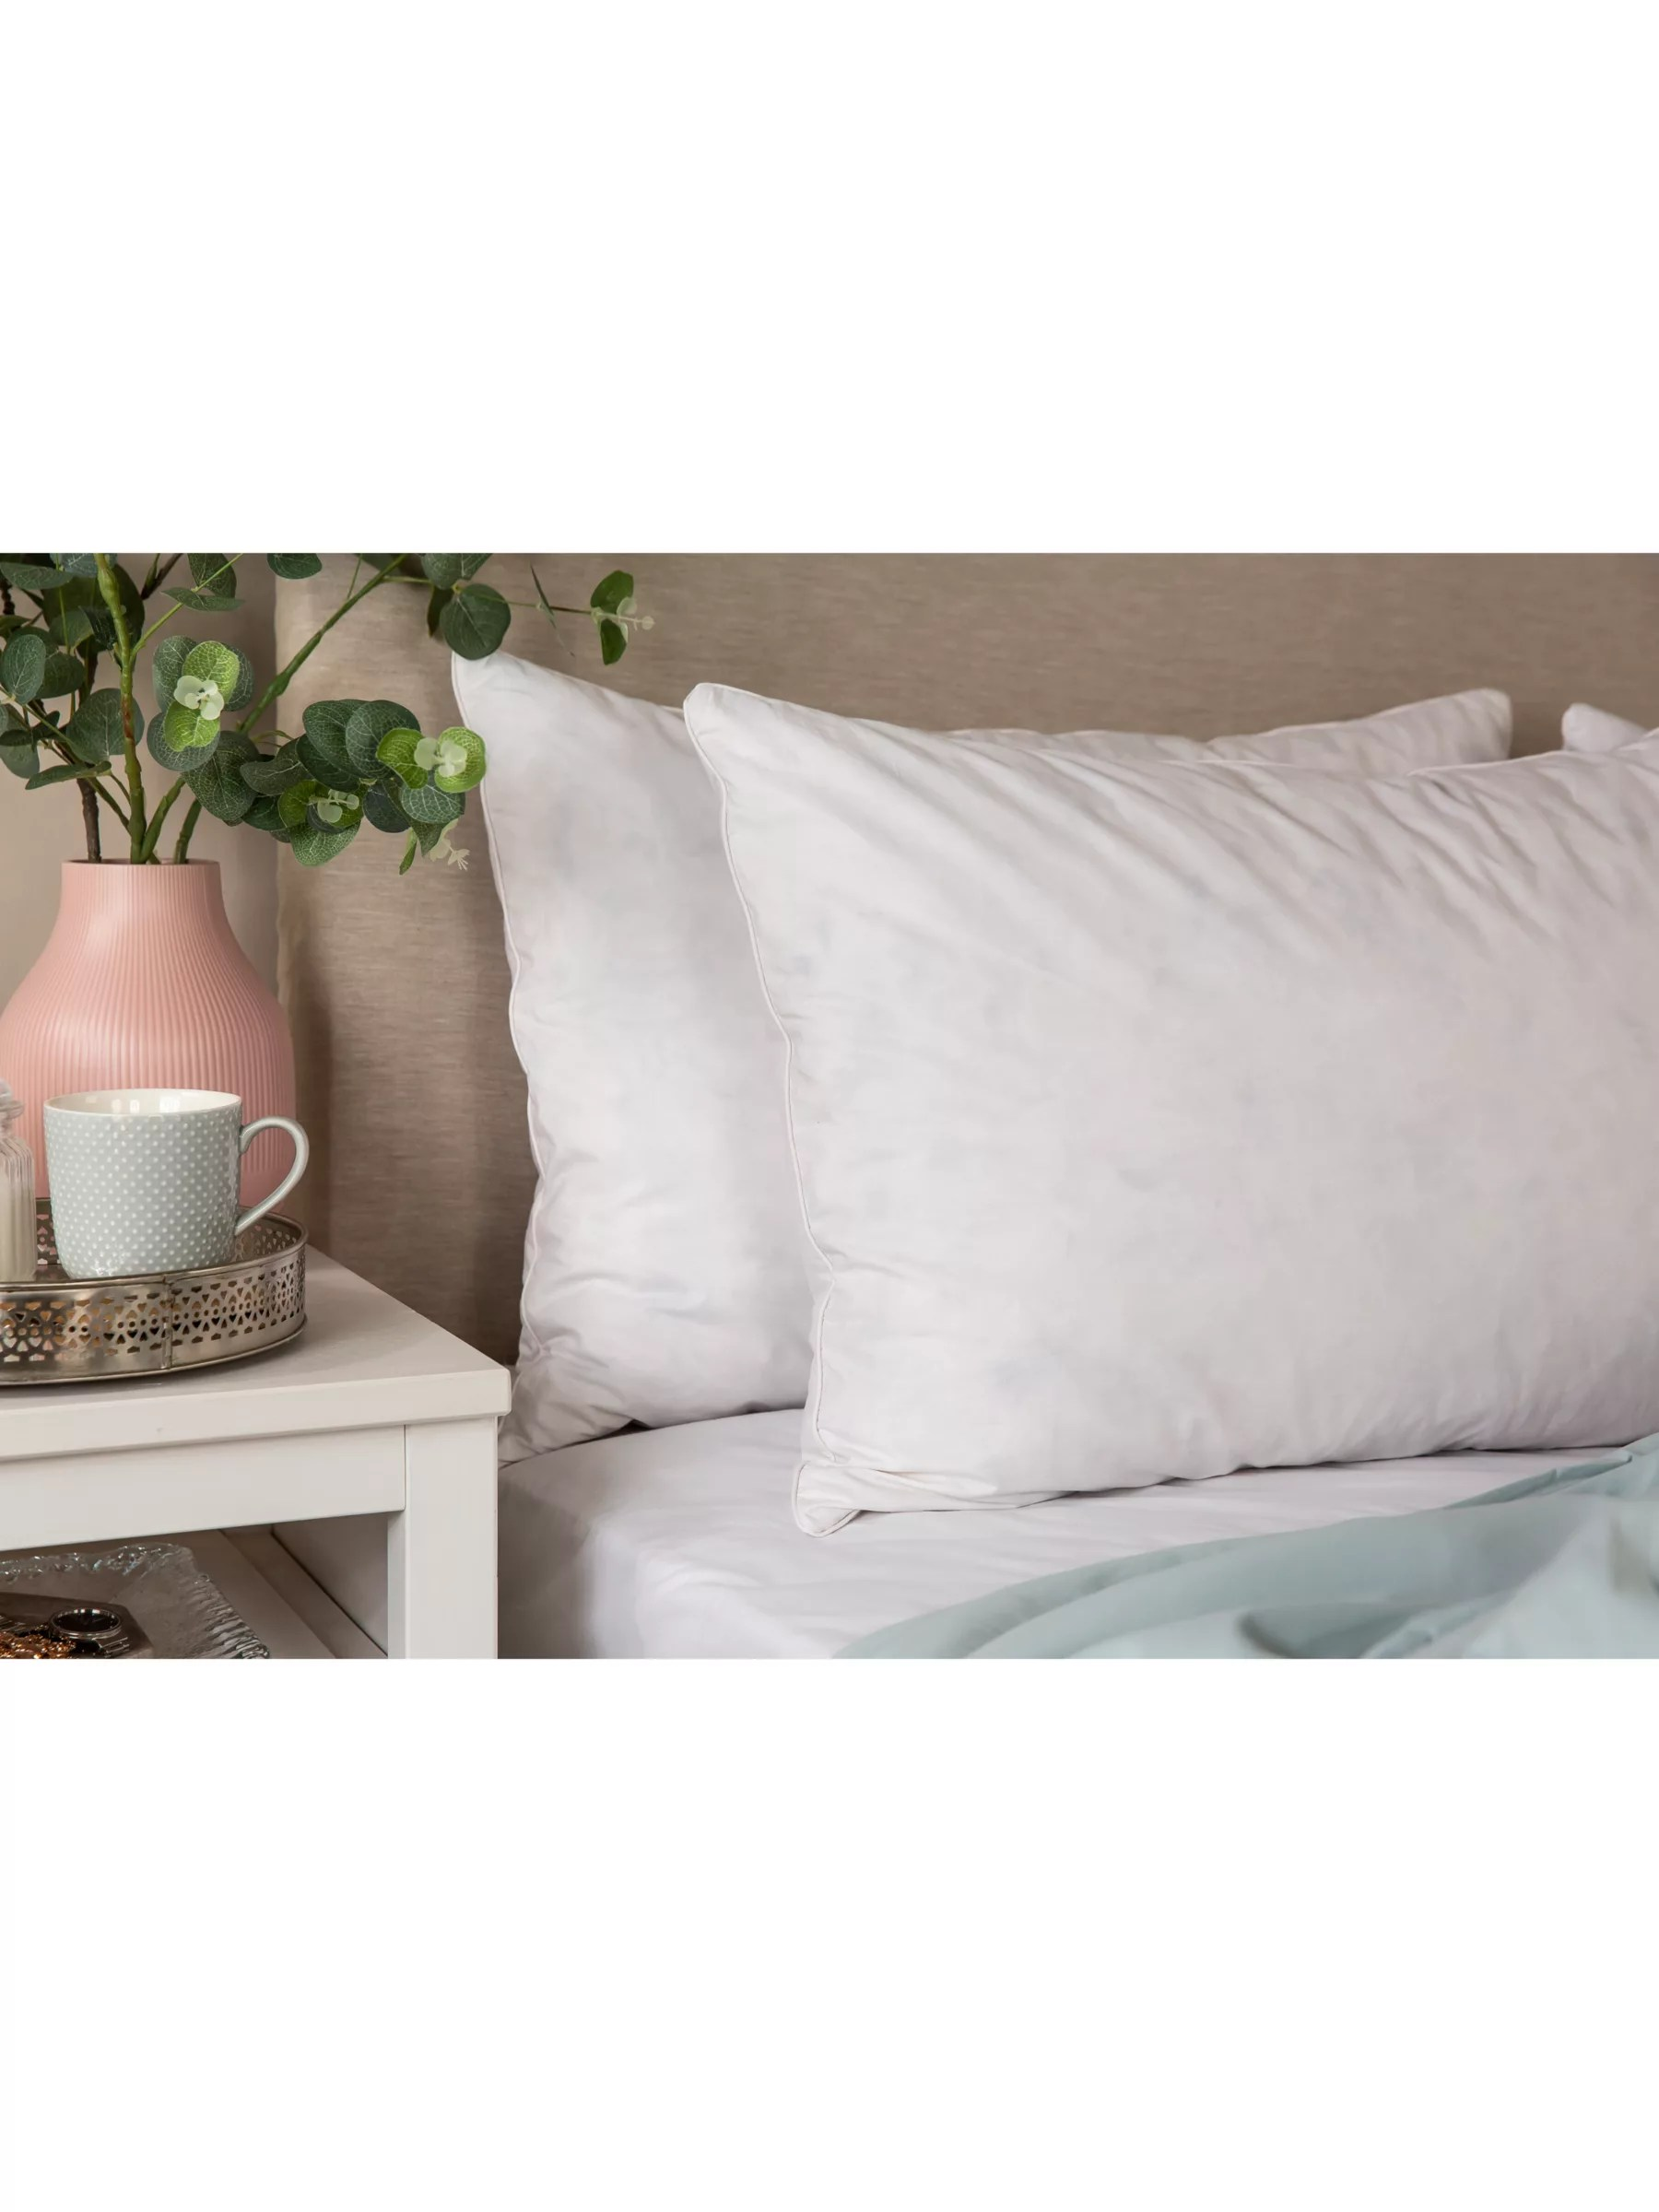 snuggledown natural duck feather and down standard pillow soft medium